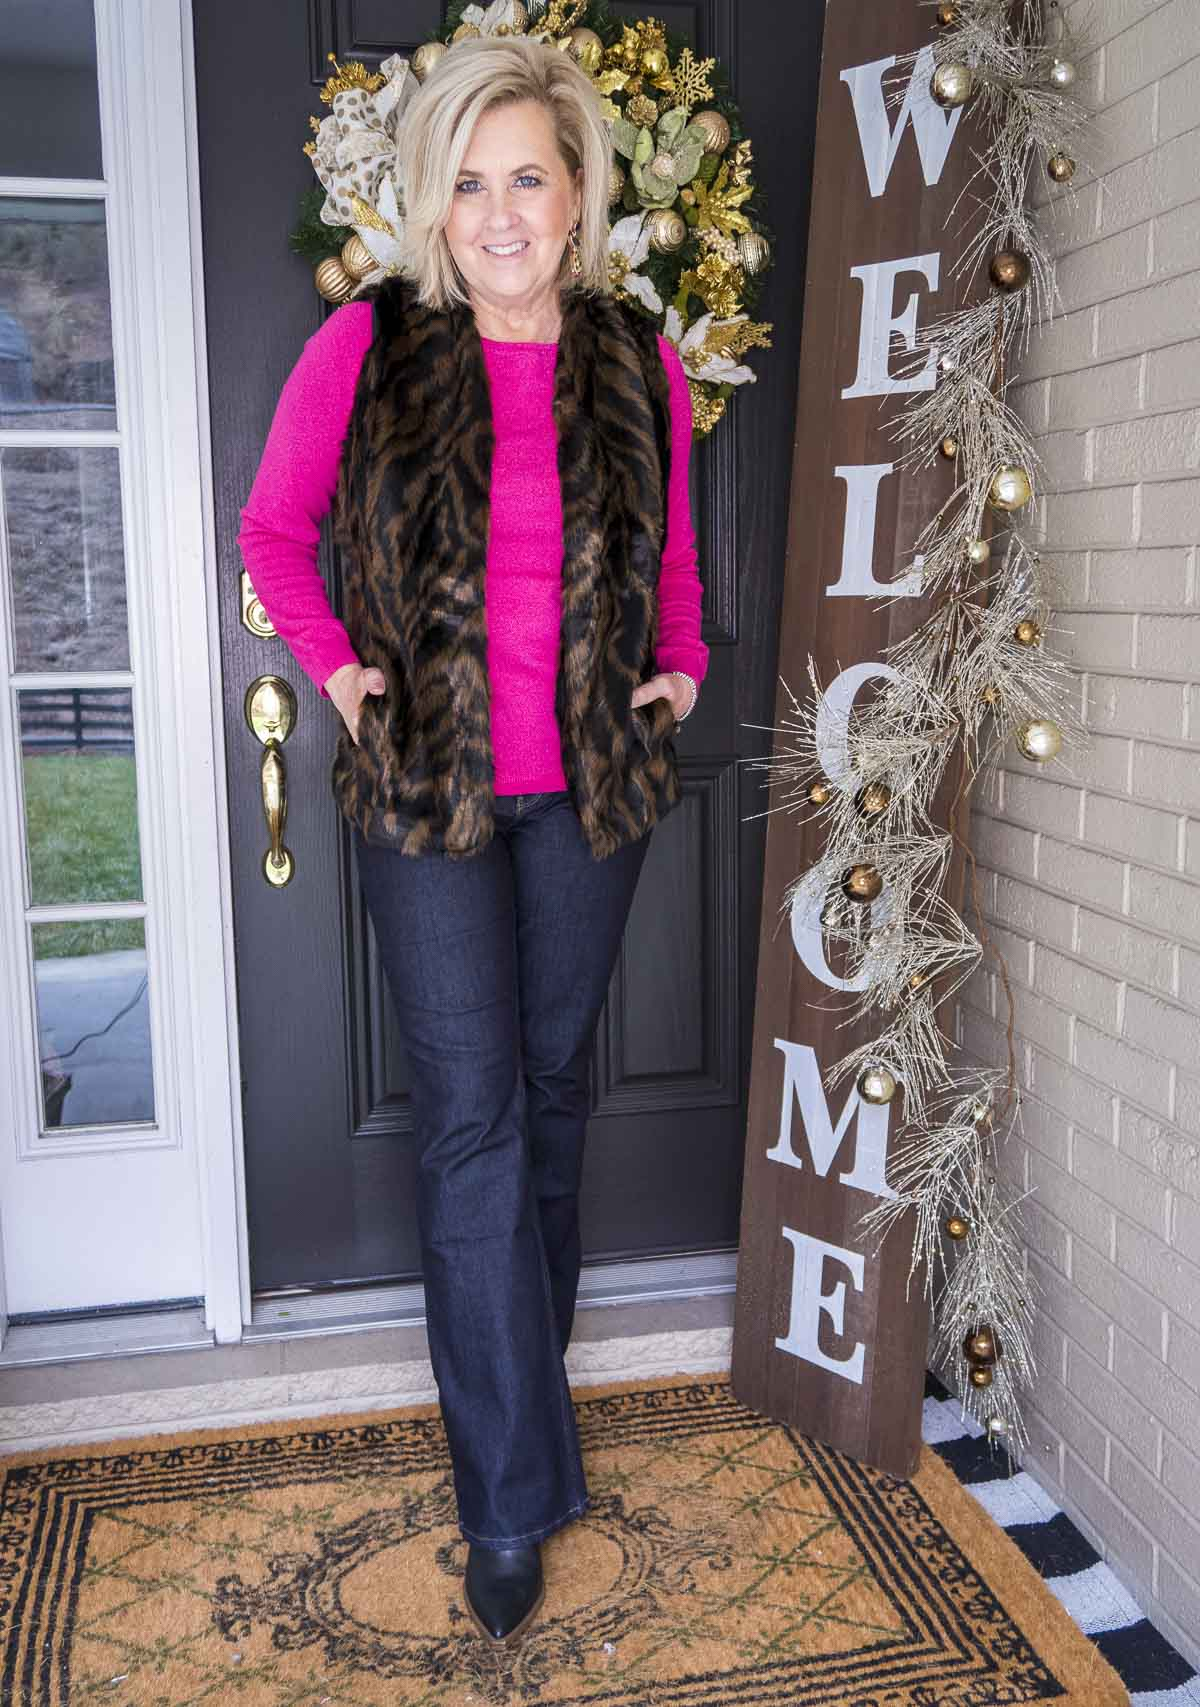 Over 40 Fashion Blogger 50 Is Not Old is wearing a bright pink sweater with a tiger print faux fur vest, flare jeans, and black pointy boots